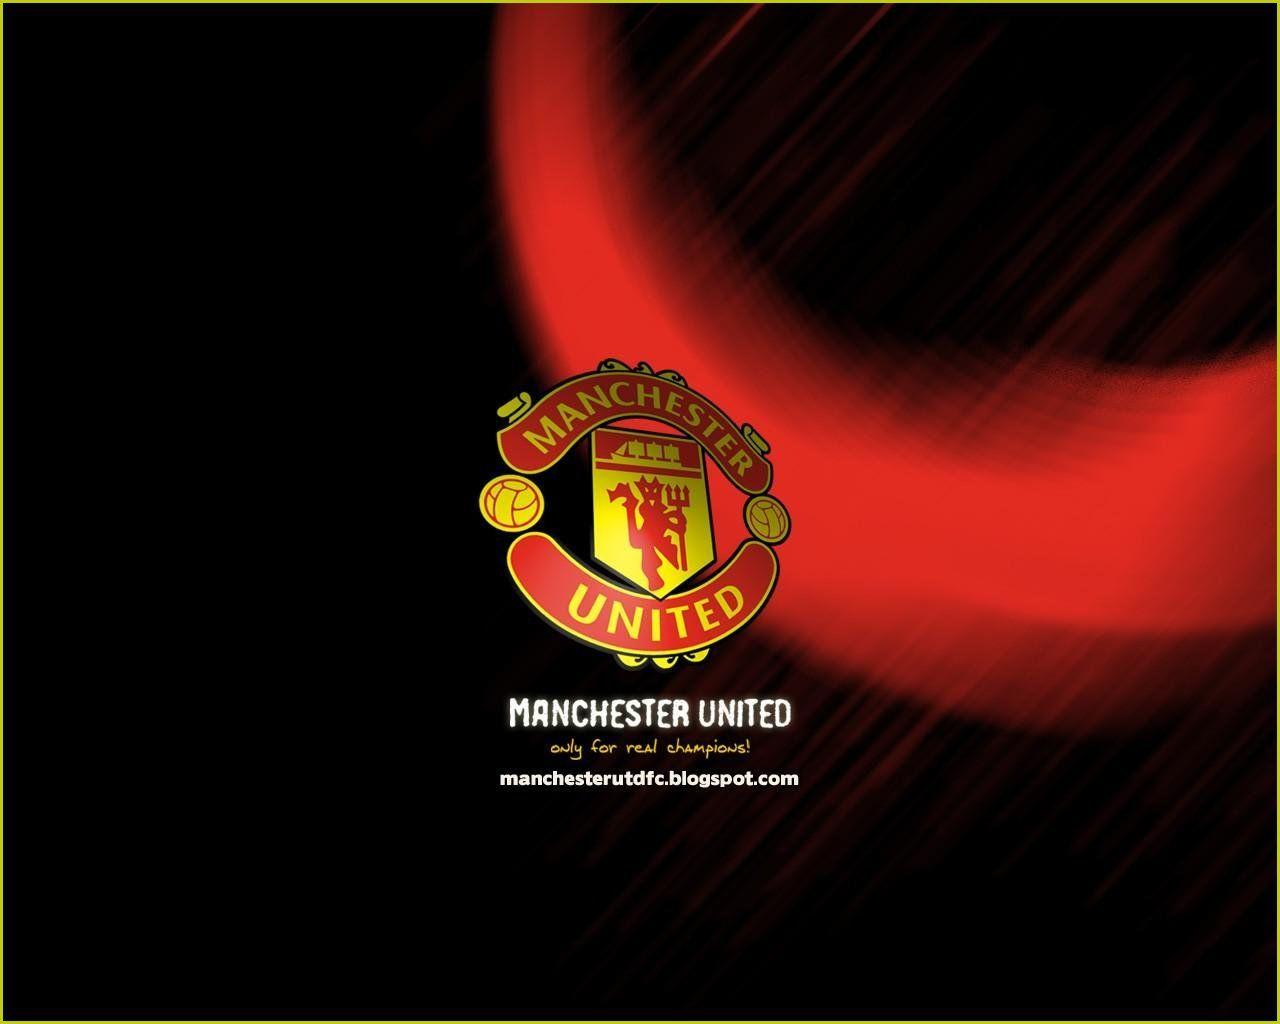 Manchester United Logo 26972 Hd Wallpapers in Football